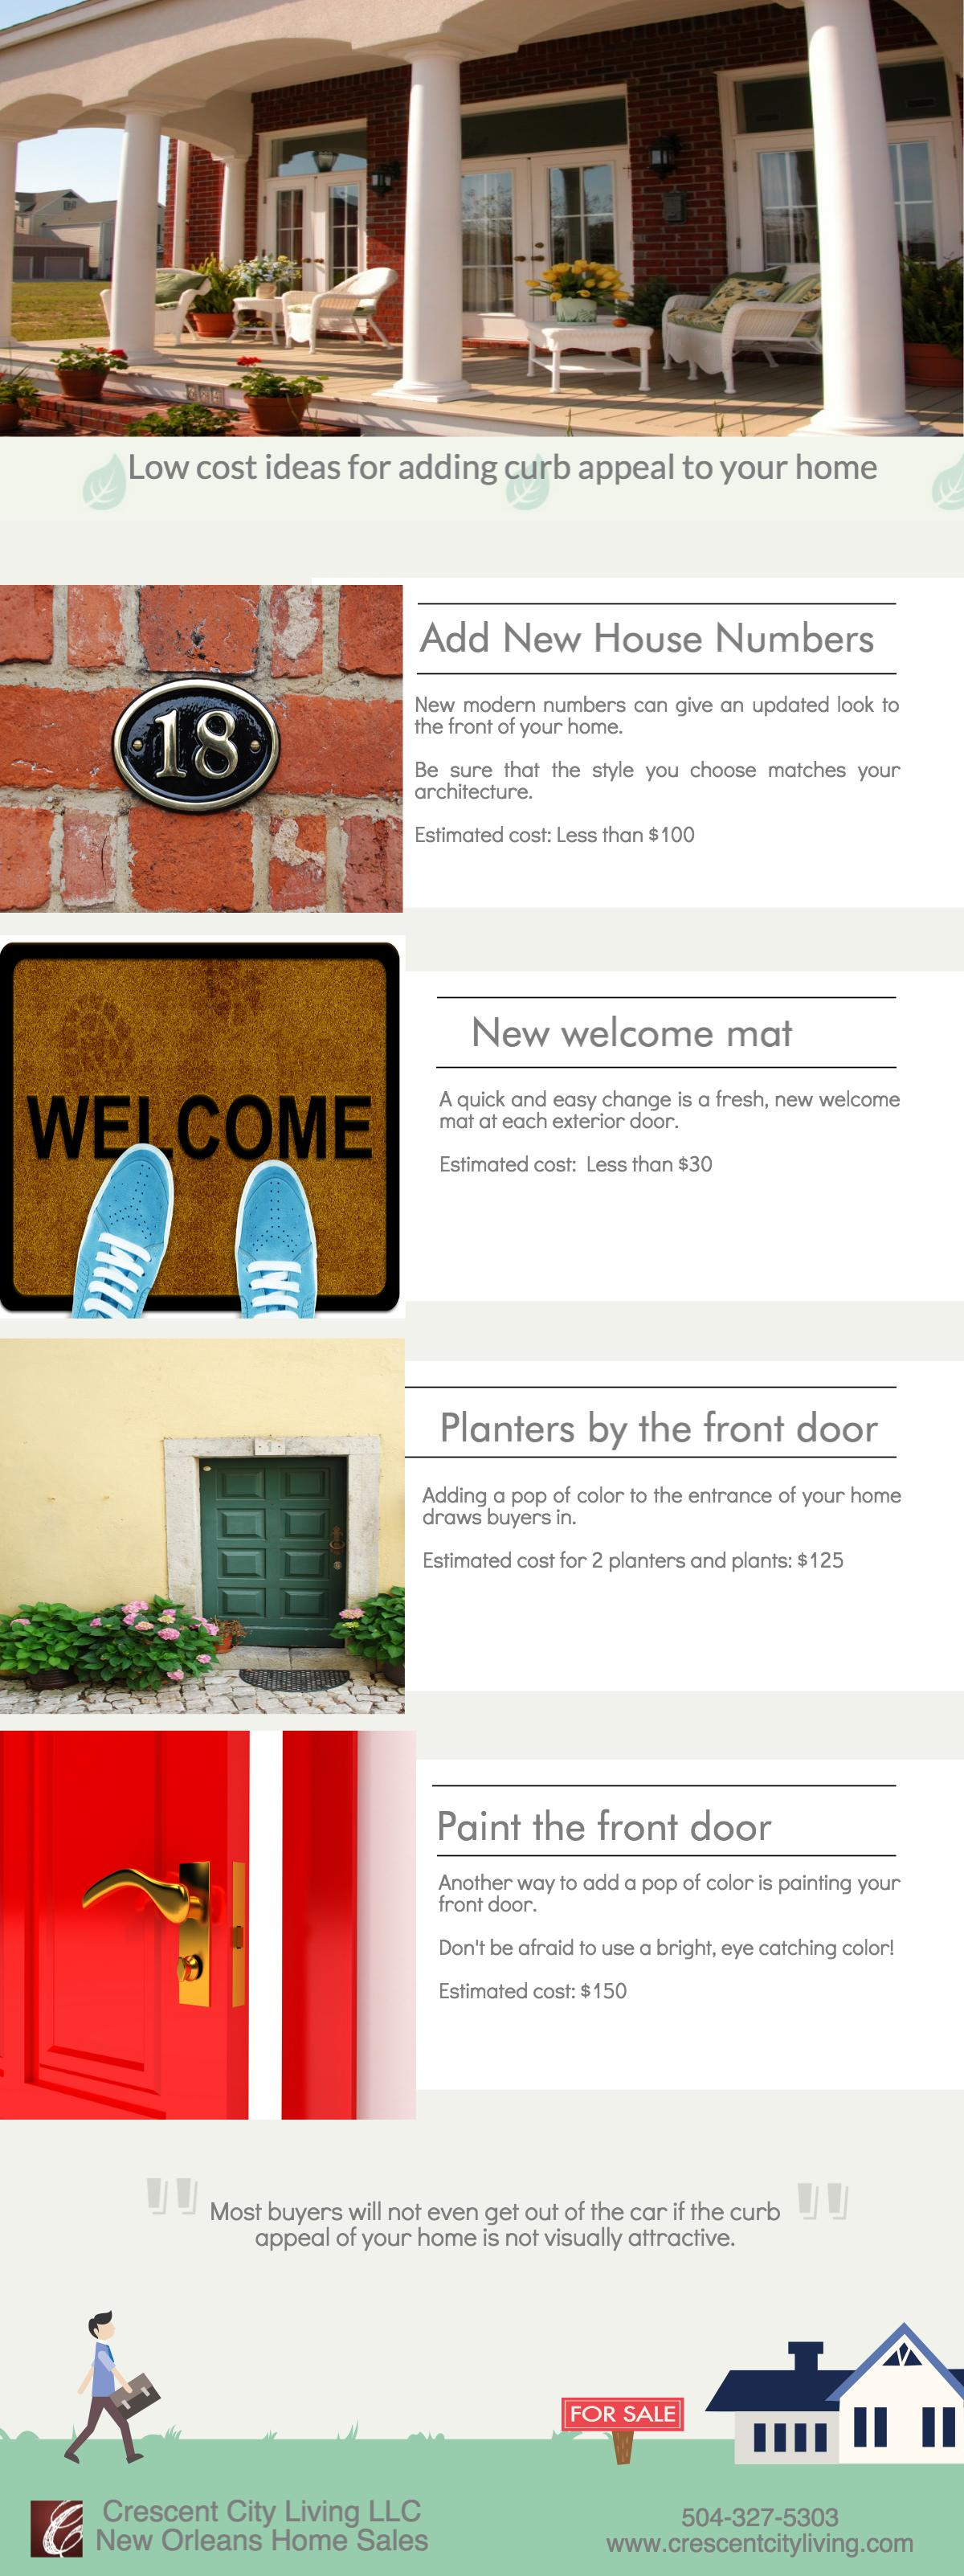 Low cost ideas to add curb appeal